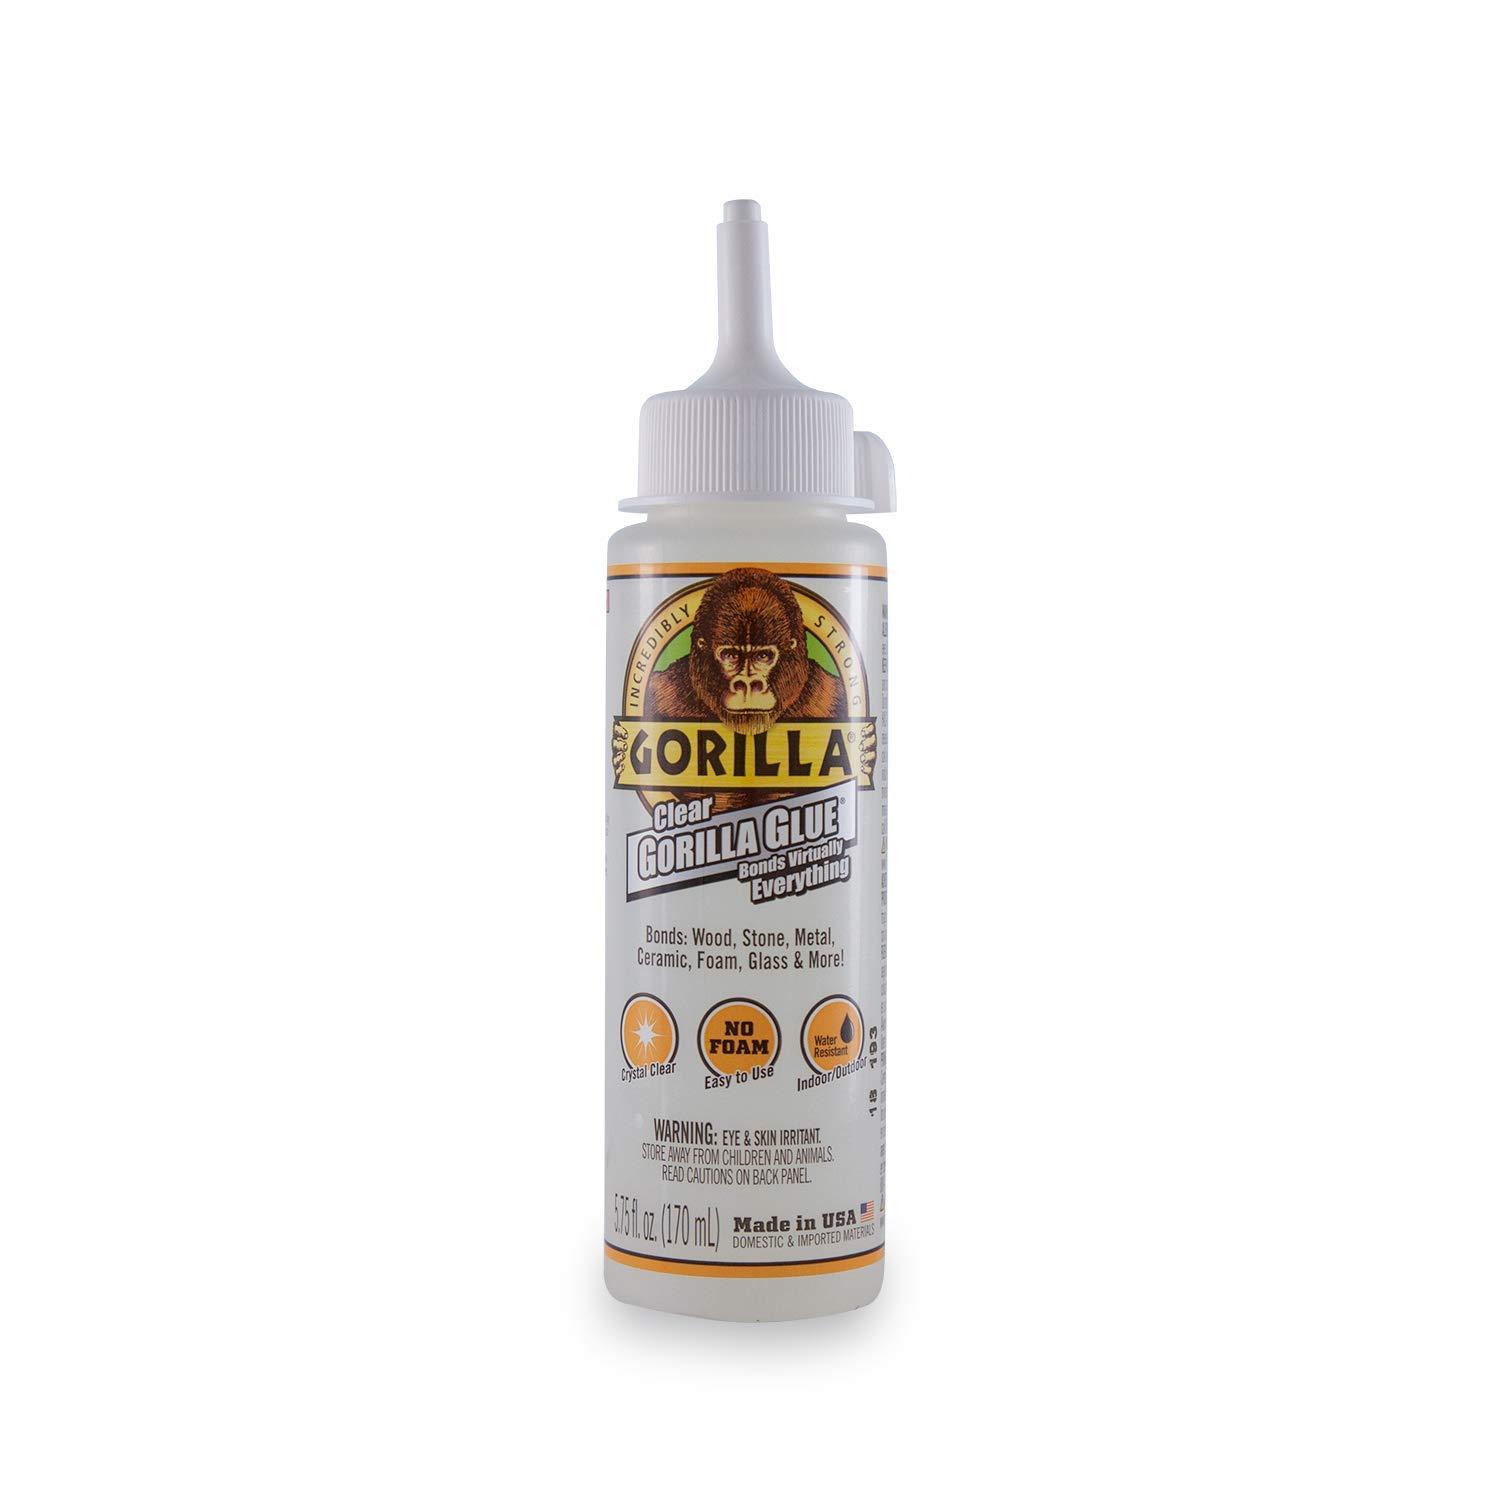 Gorilla Clear Glue, 5.75 ounce Bottle, Clear (Pack of 1)